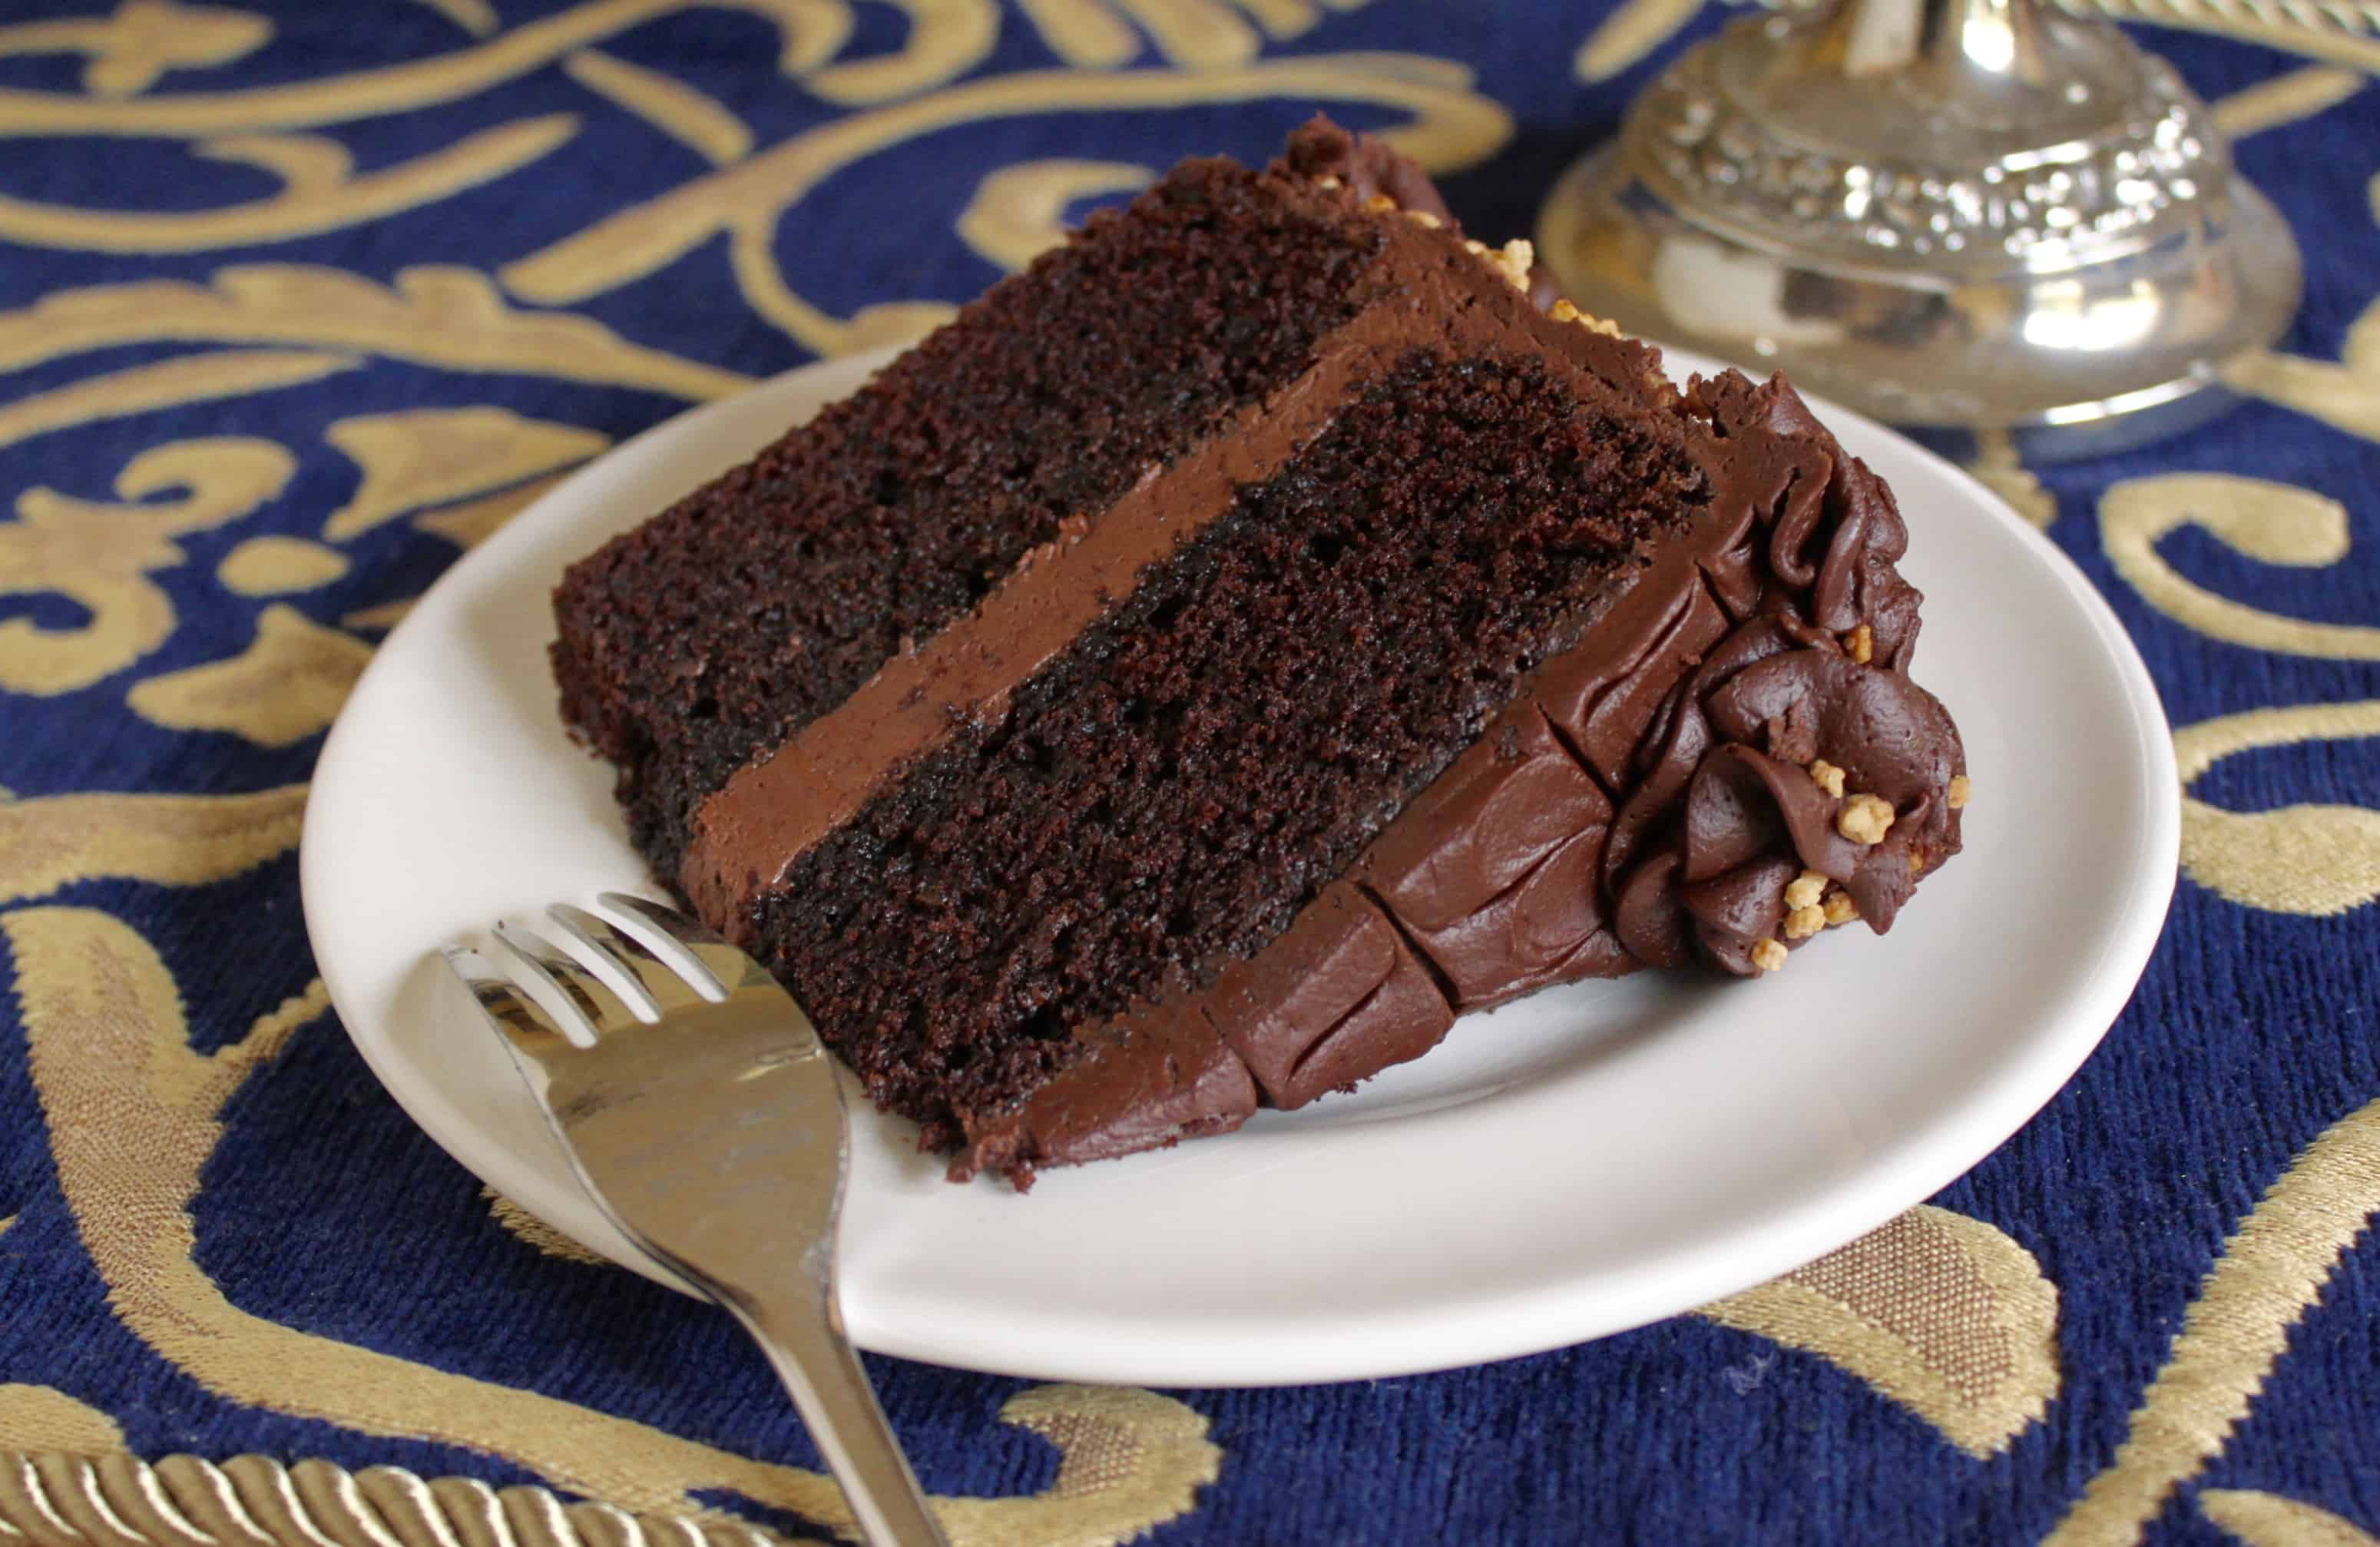 Slice of moist Chocolate Cake